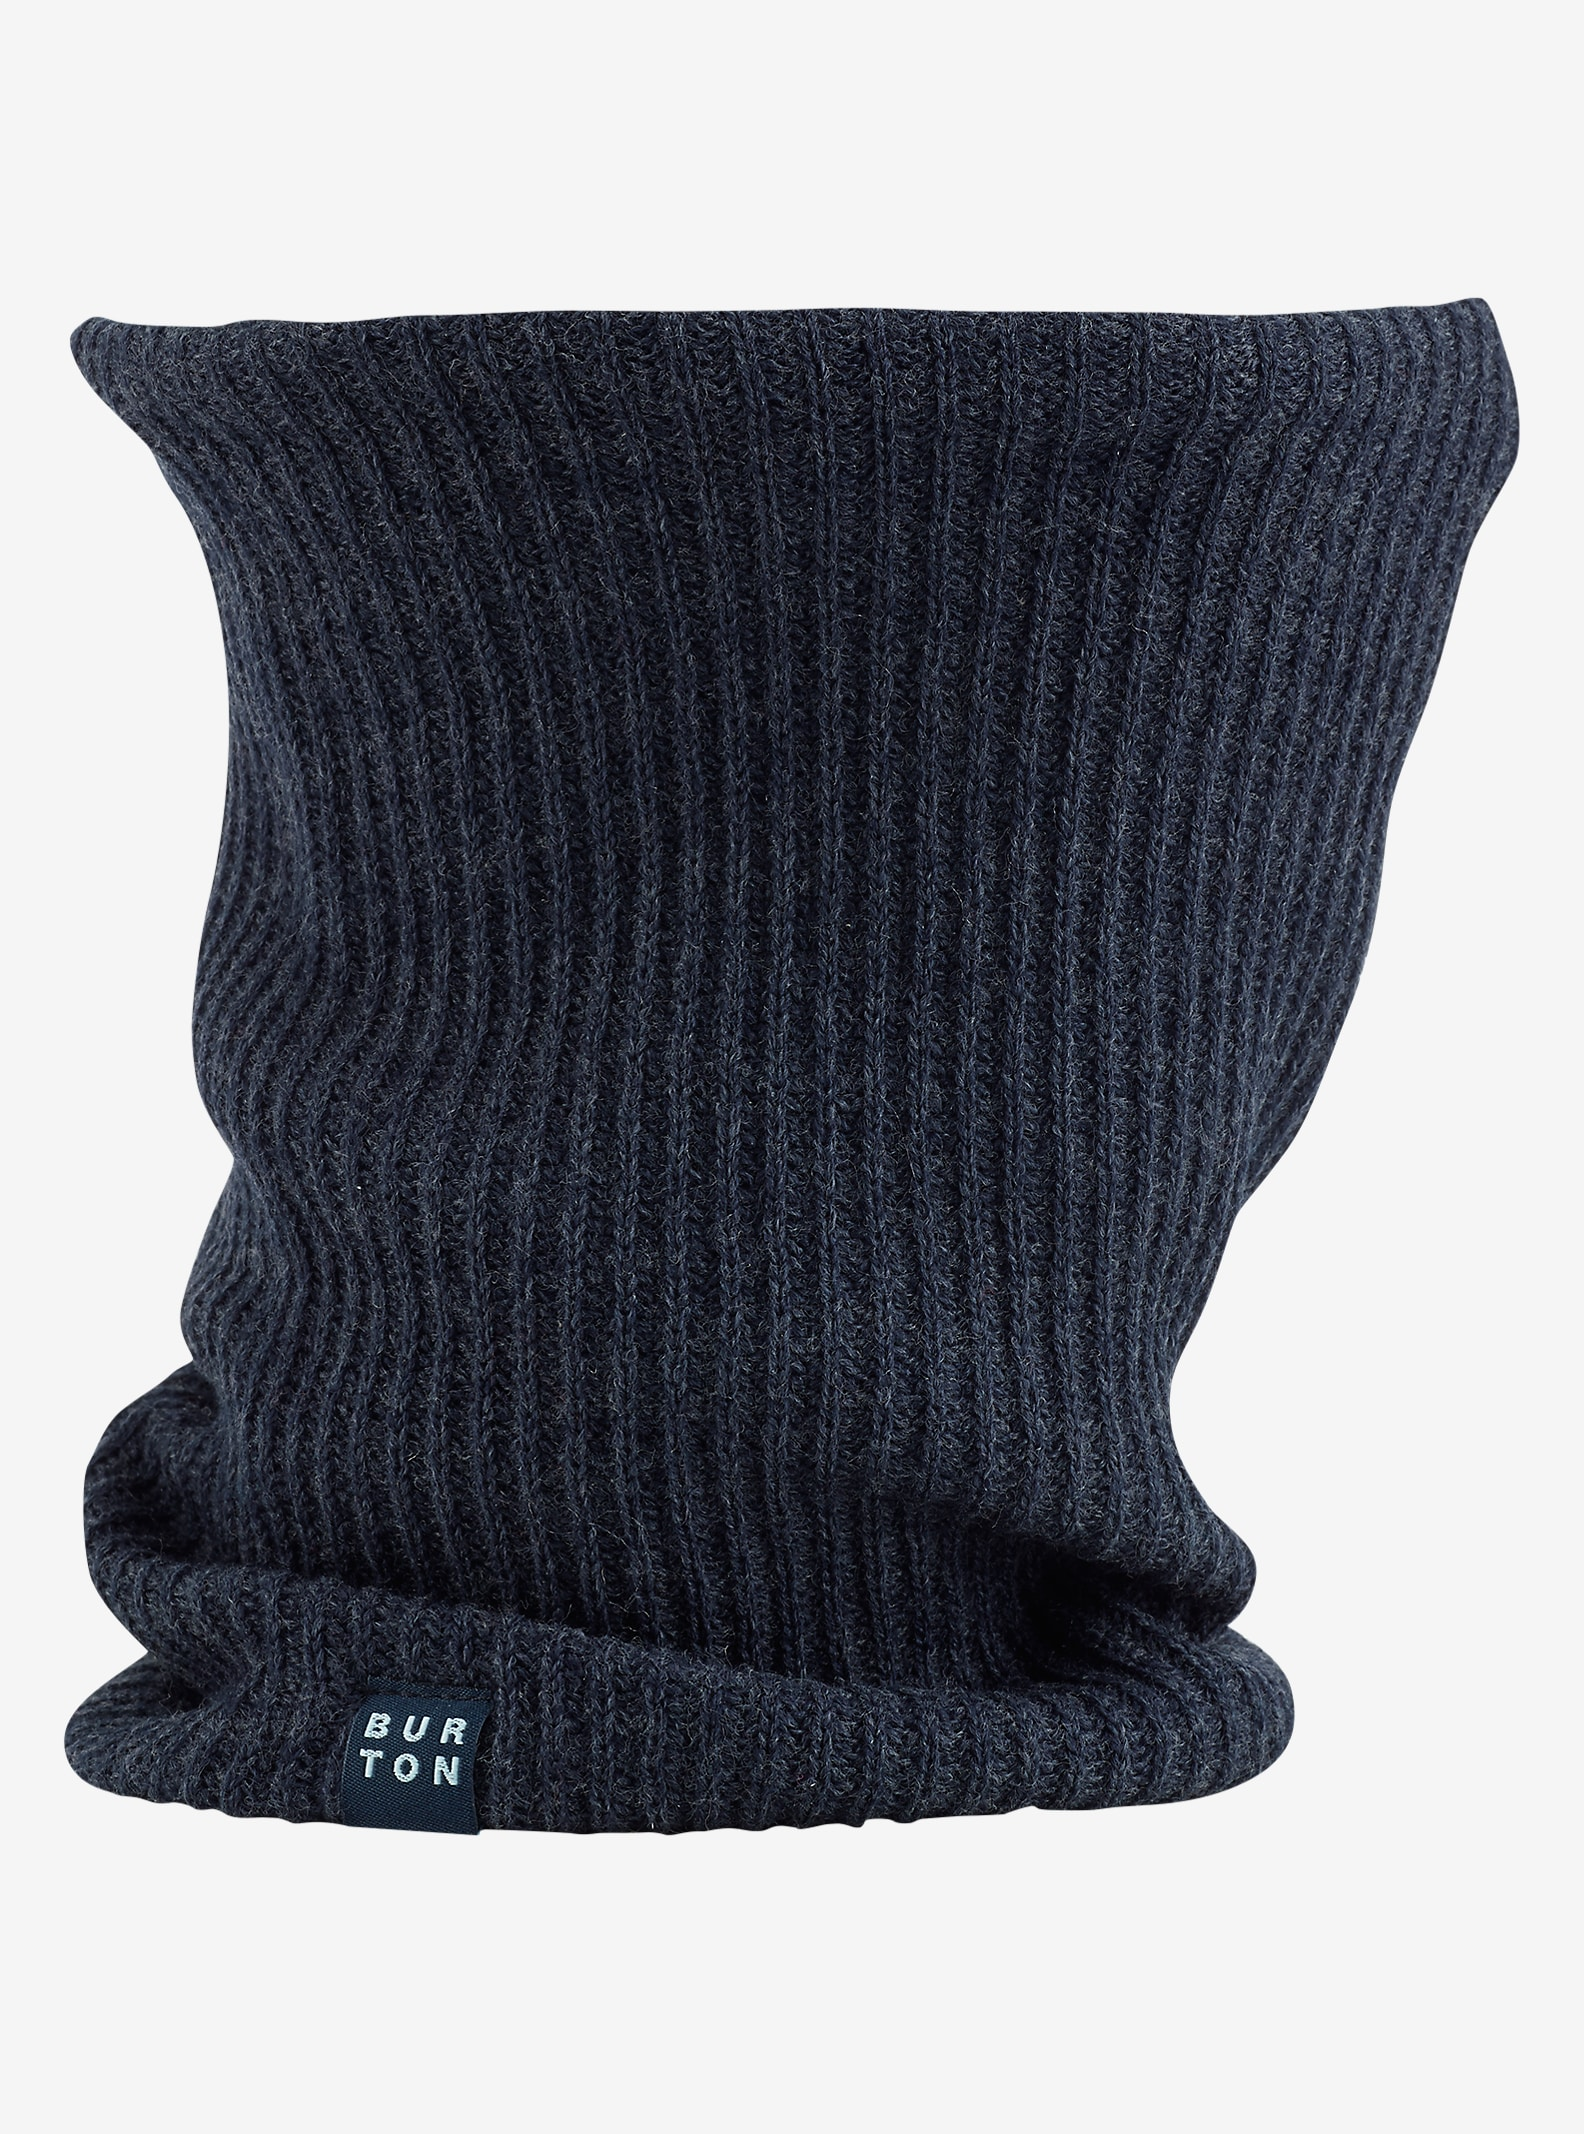 Burton Truckstop Neck Warmer shown in Eclipse Heather